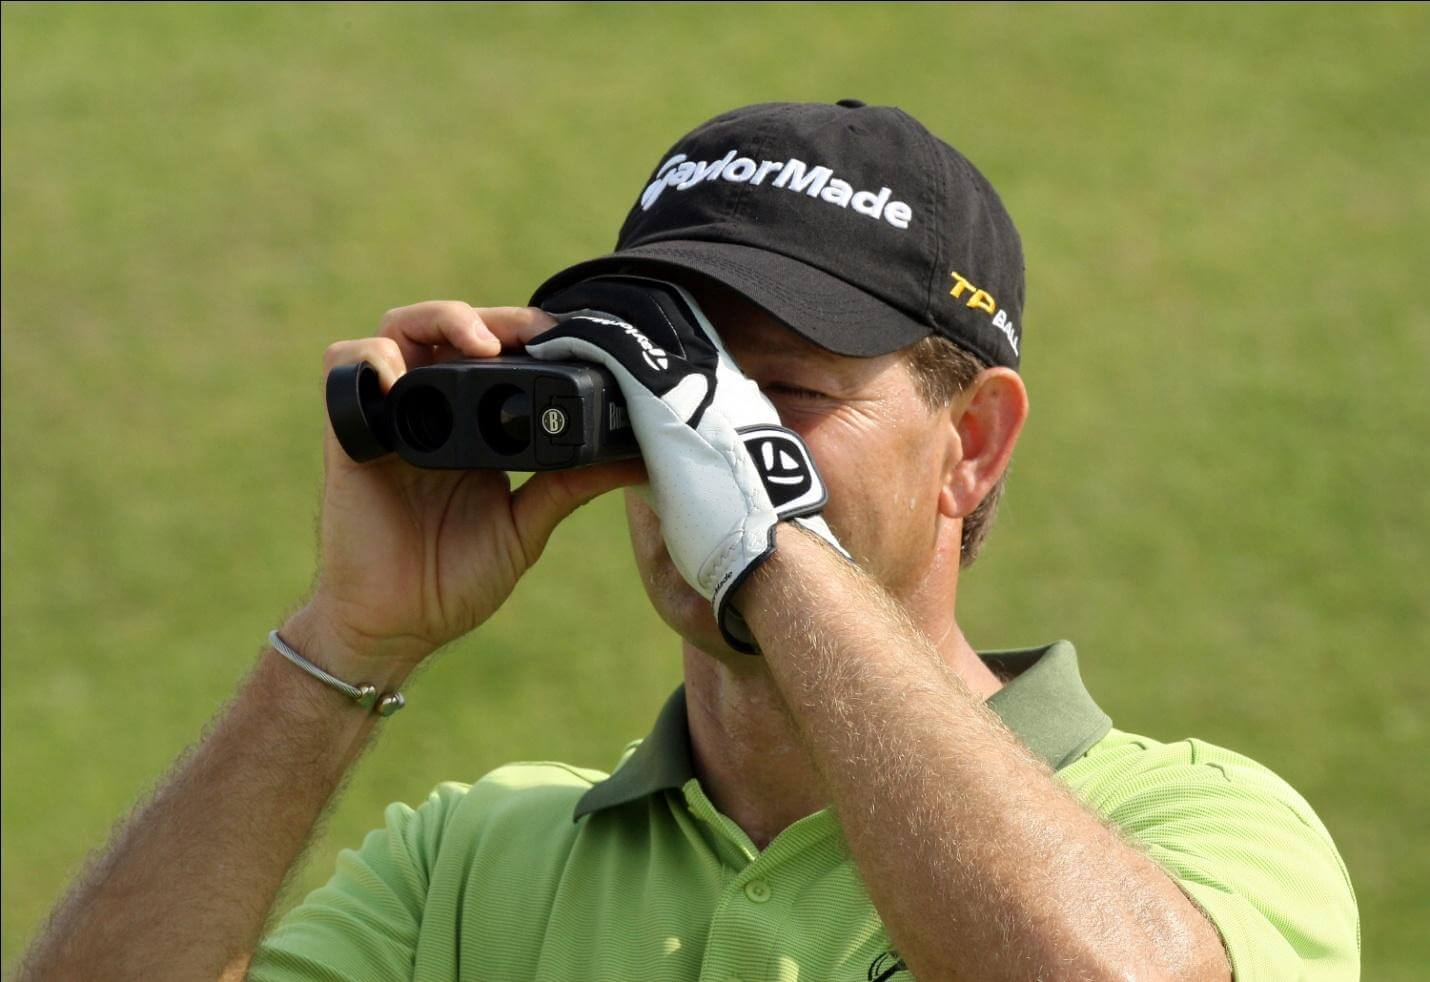 Buying A Golf Range Finder: A Buyer's Guide